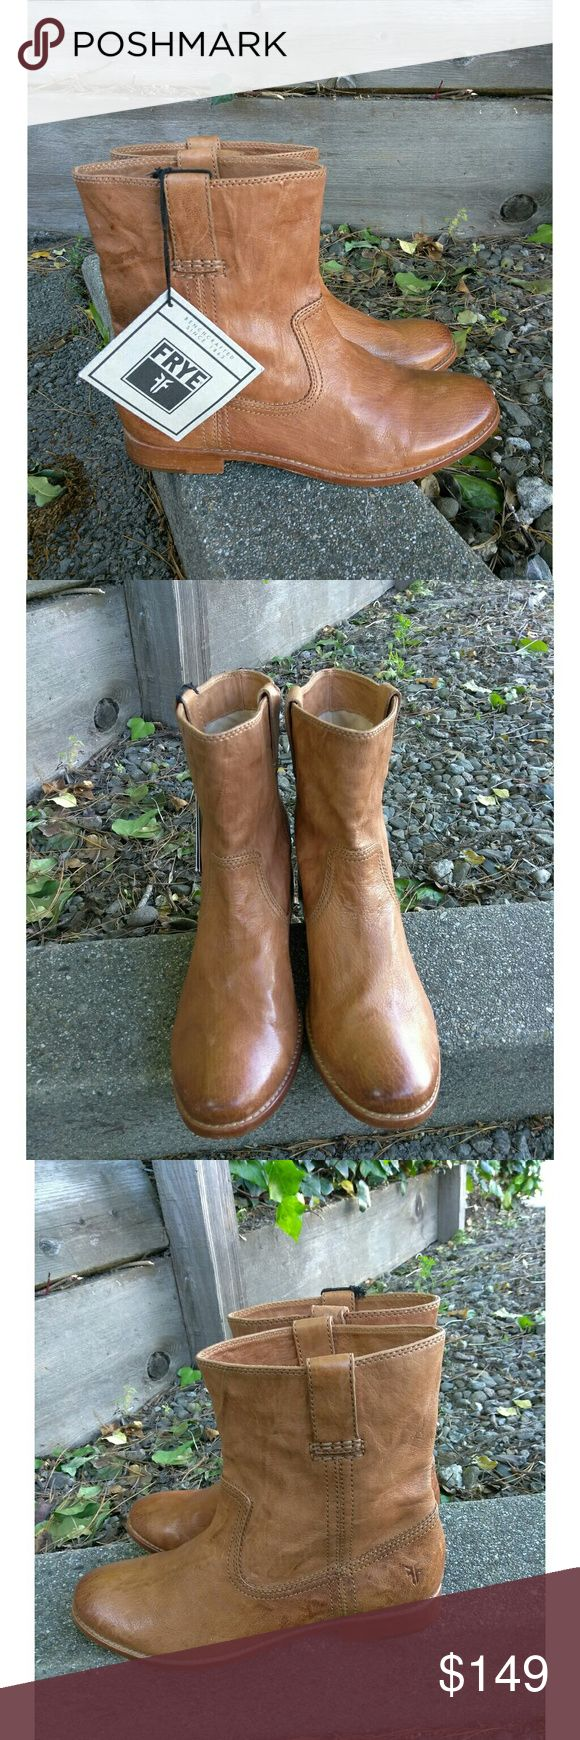 NEW!!Frye Womens Anna Shortie Tan Leather Ankle Frye 1282 Womens Anna Shortie Tan Leather Ankle Riding Boots Size 11 Medium. New Without Box. Thank you for looking ?? Frye Shoes Heeled Boots